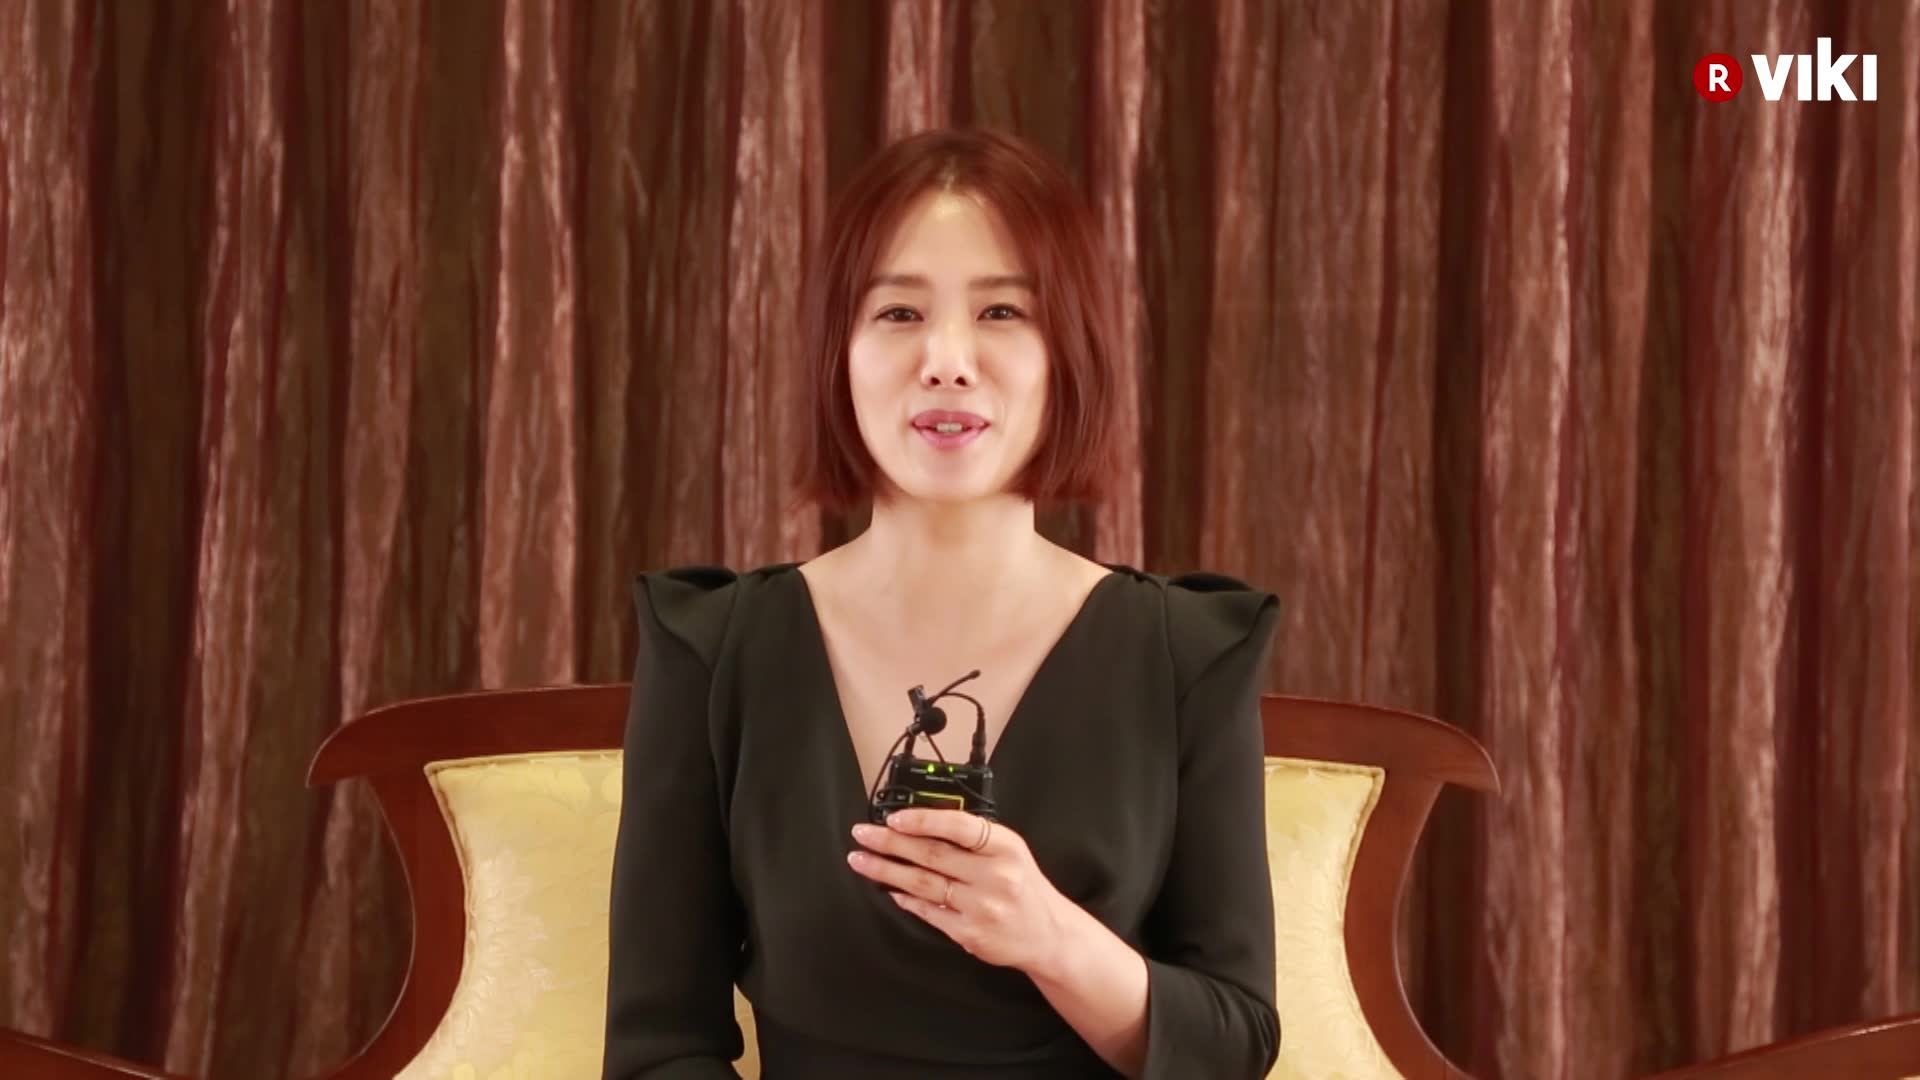 Kim Hyun Joo's Shoutout to the Channel Team: Fantastic